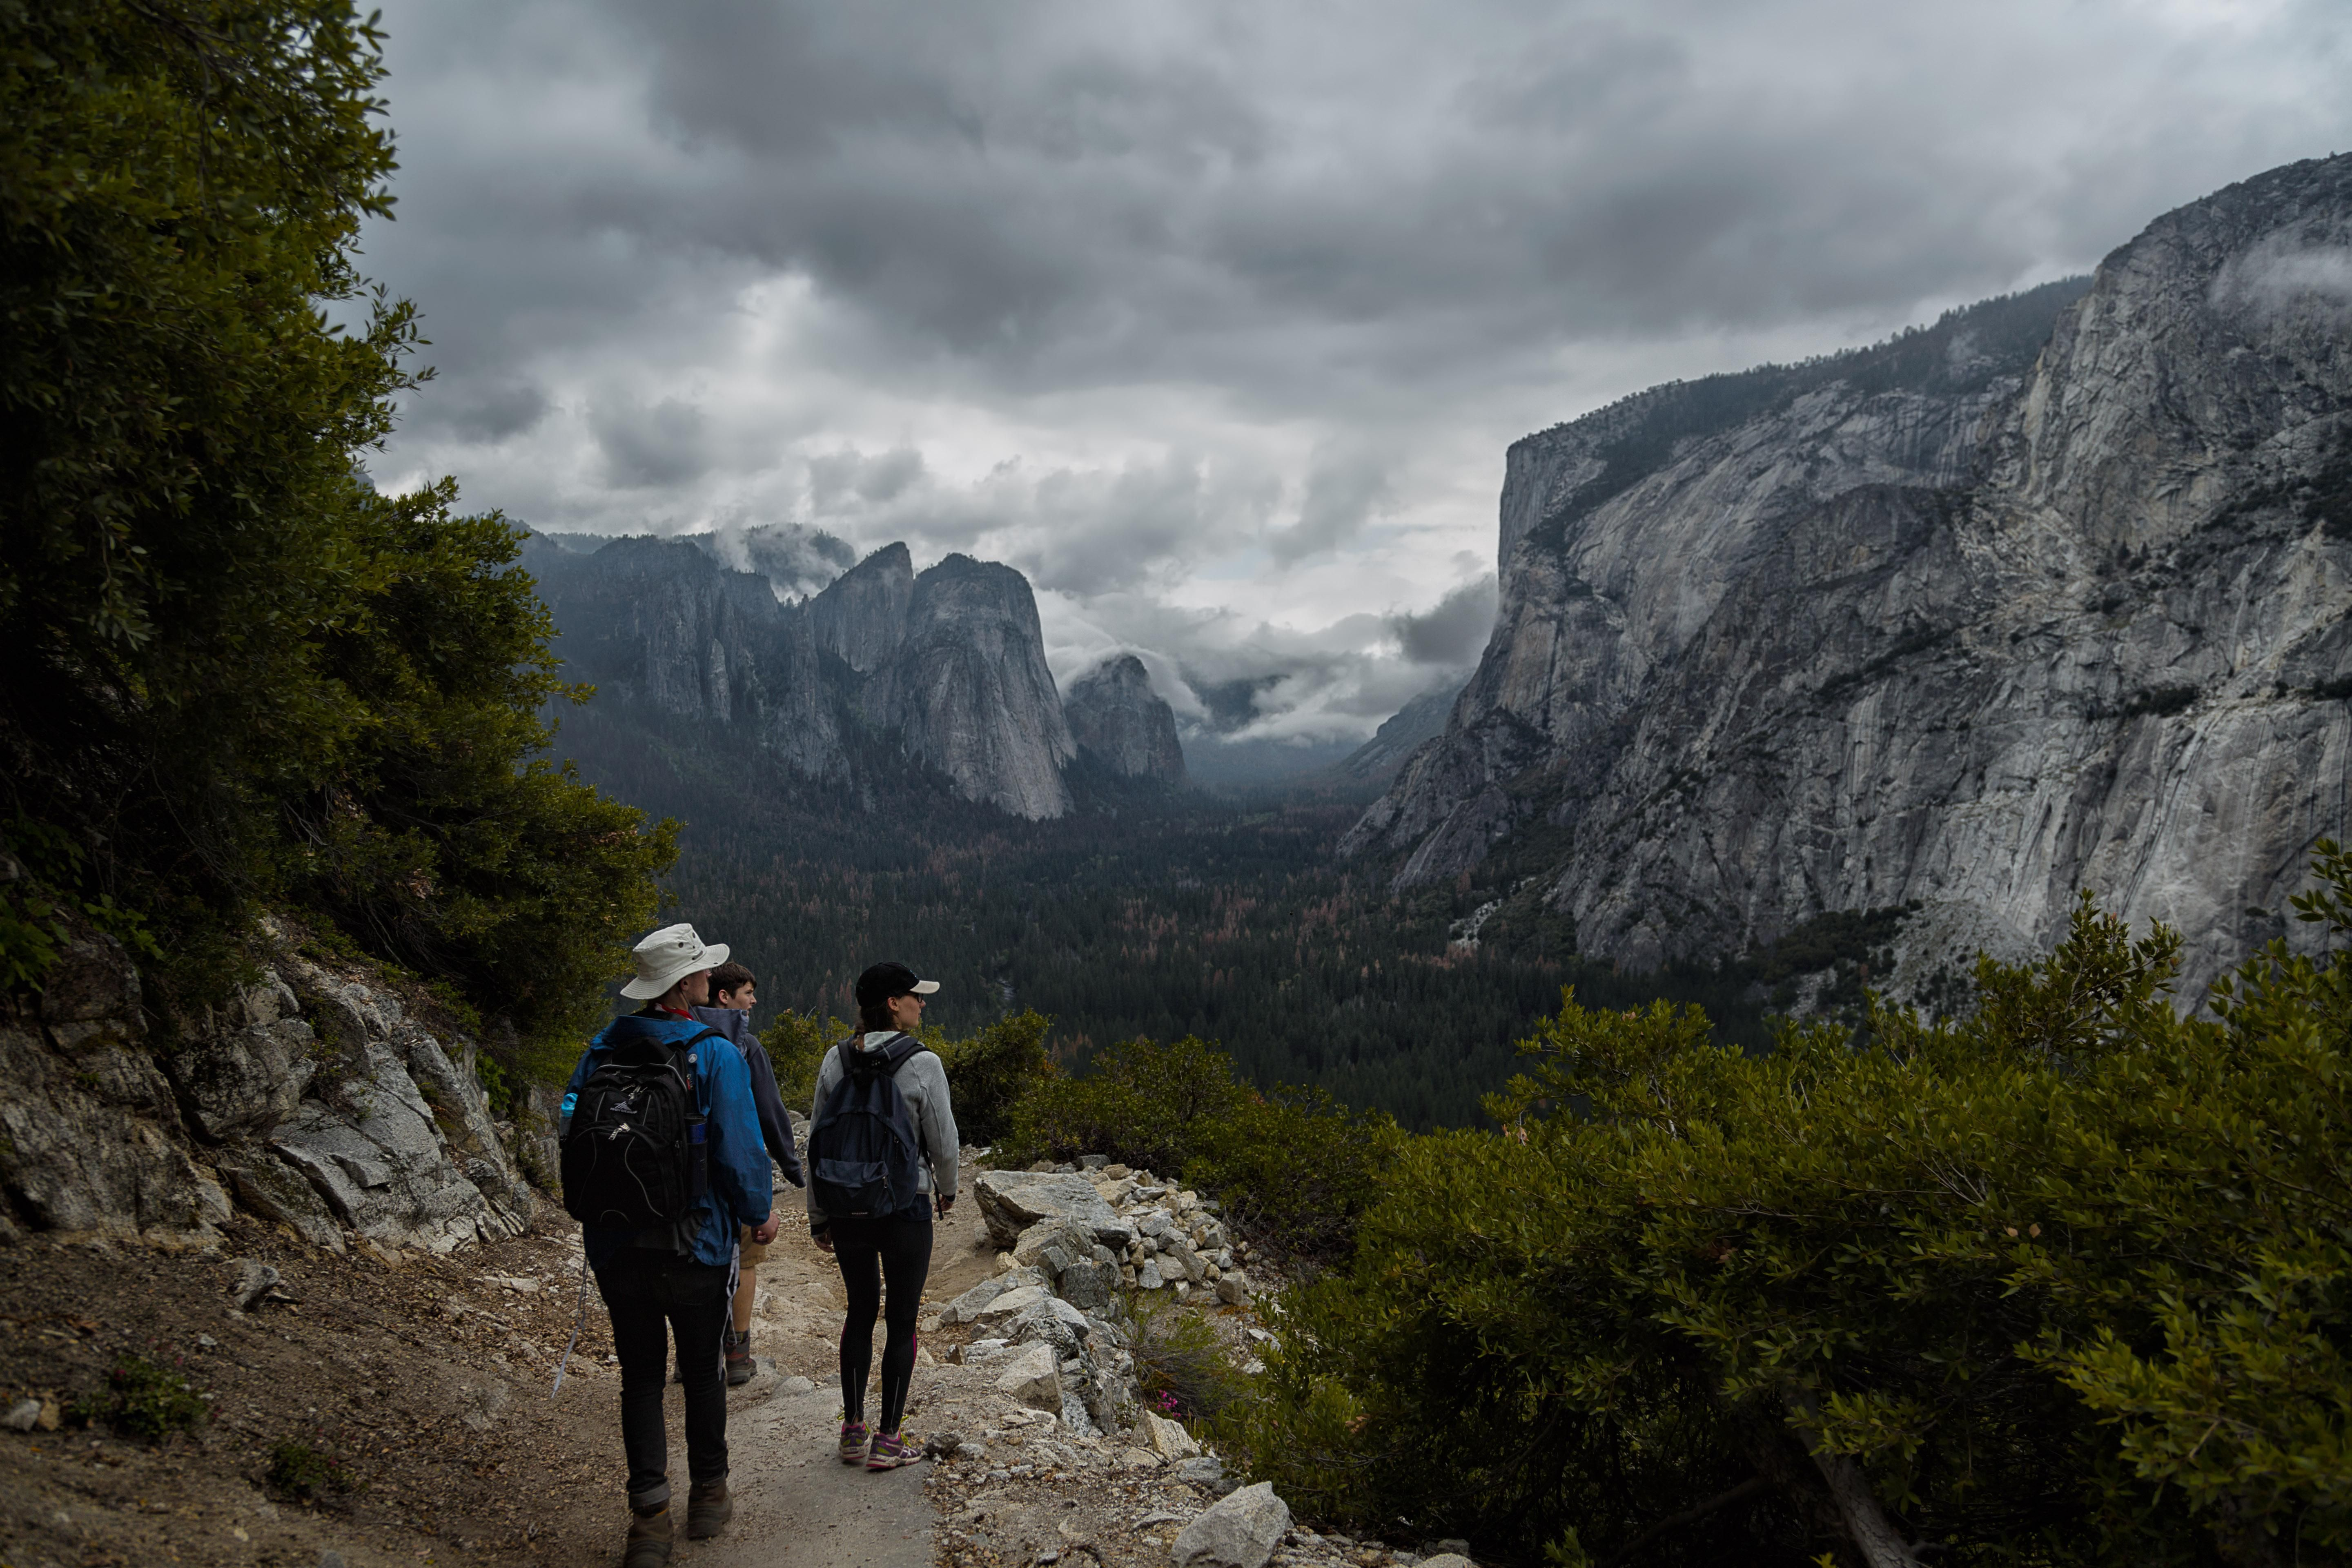 Thunderstorms were forecast the weekend we had planned to visit Yosemite we went anyway and it may be the best trip I have ever been on.